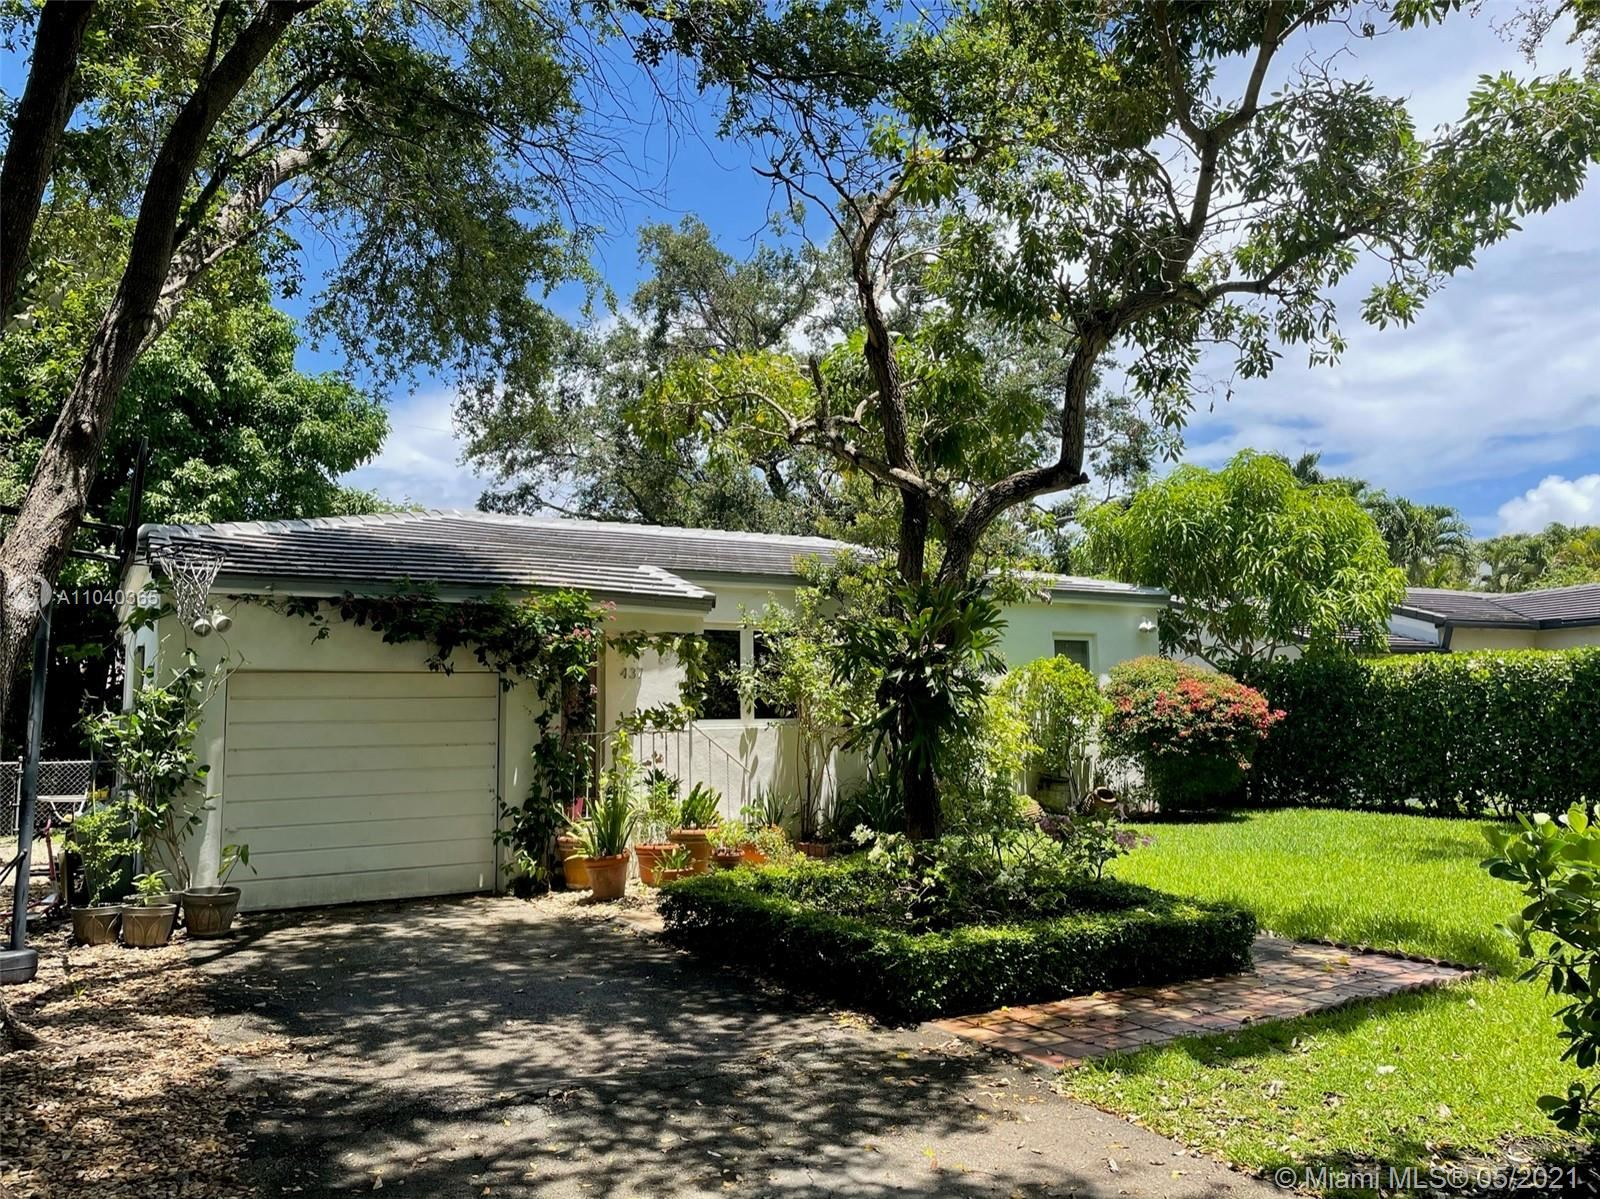 Photo of 437 Blue Rd, Coral Gables, FL 33146 (MLS # A11040365)